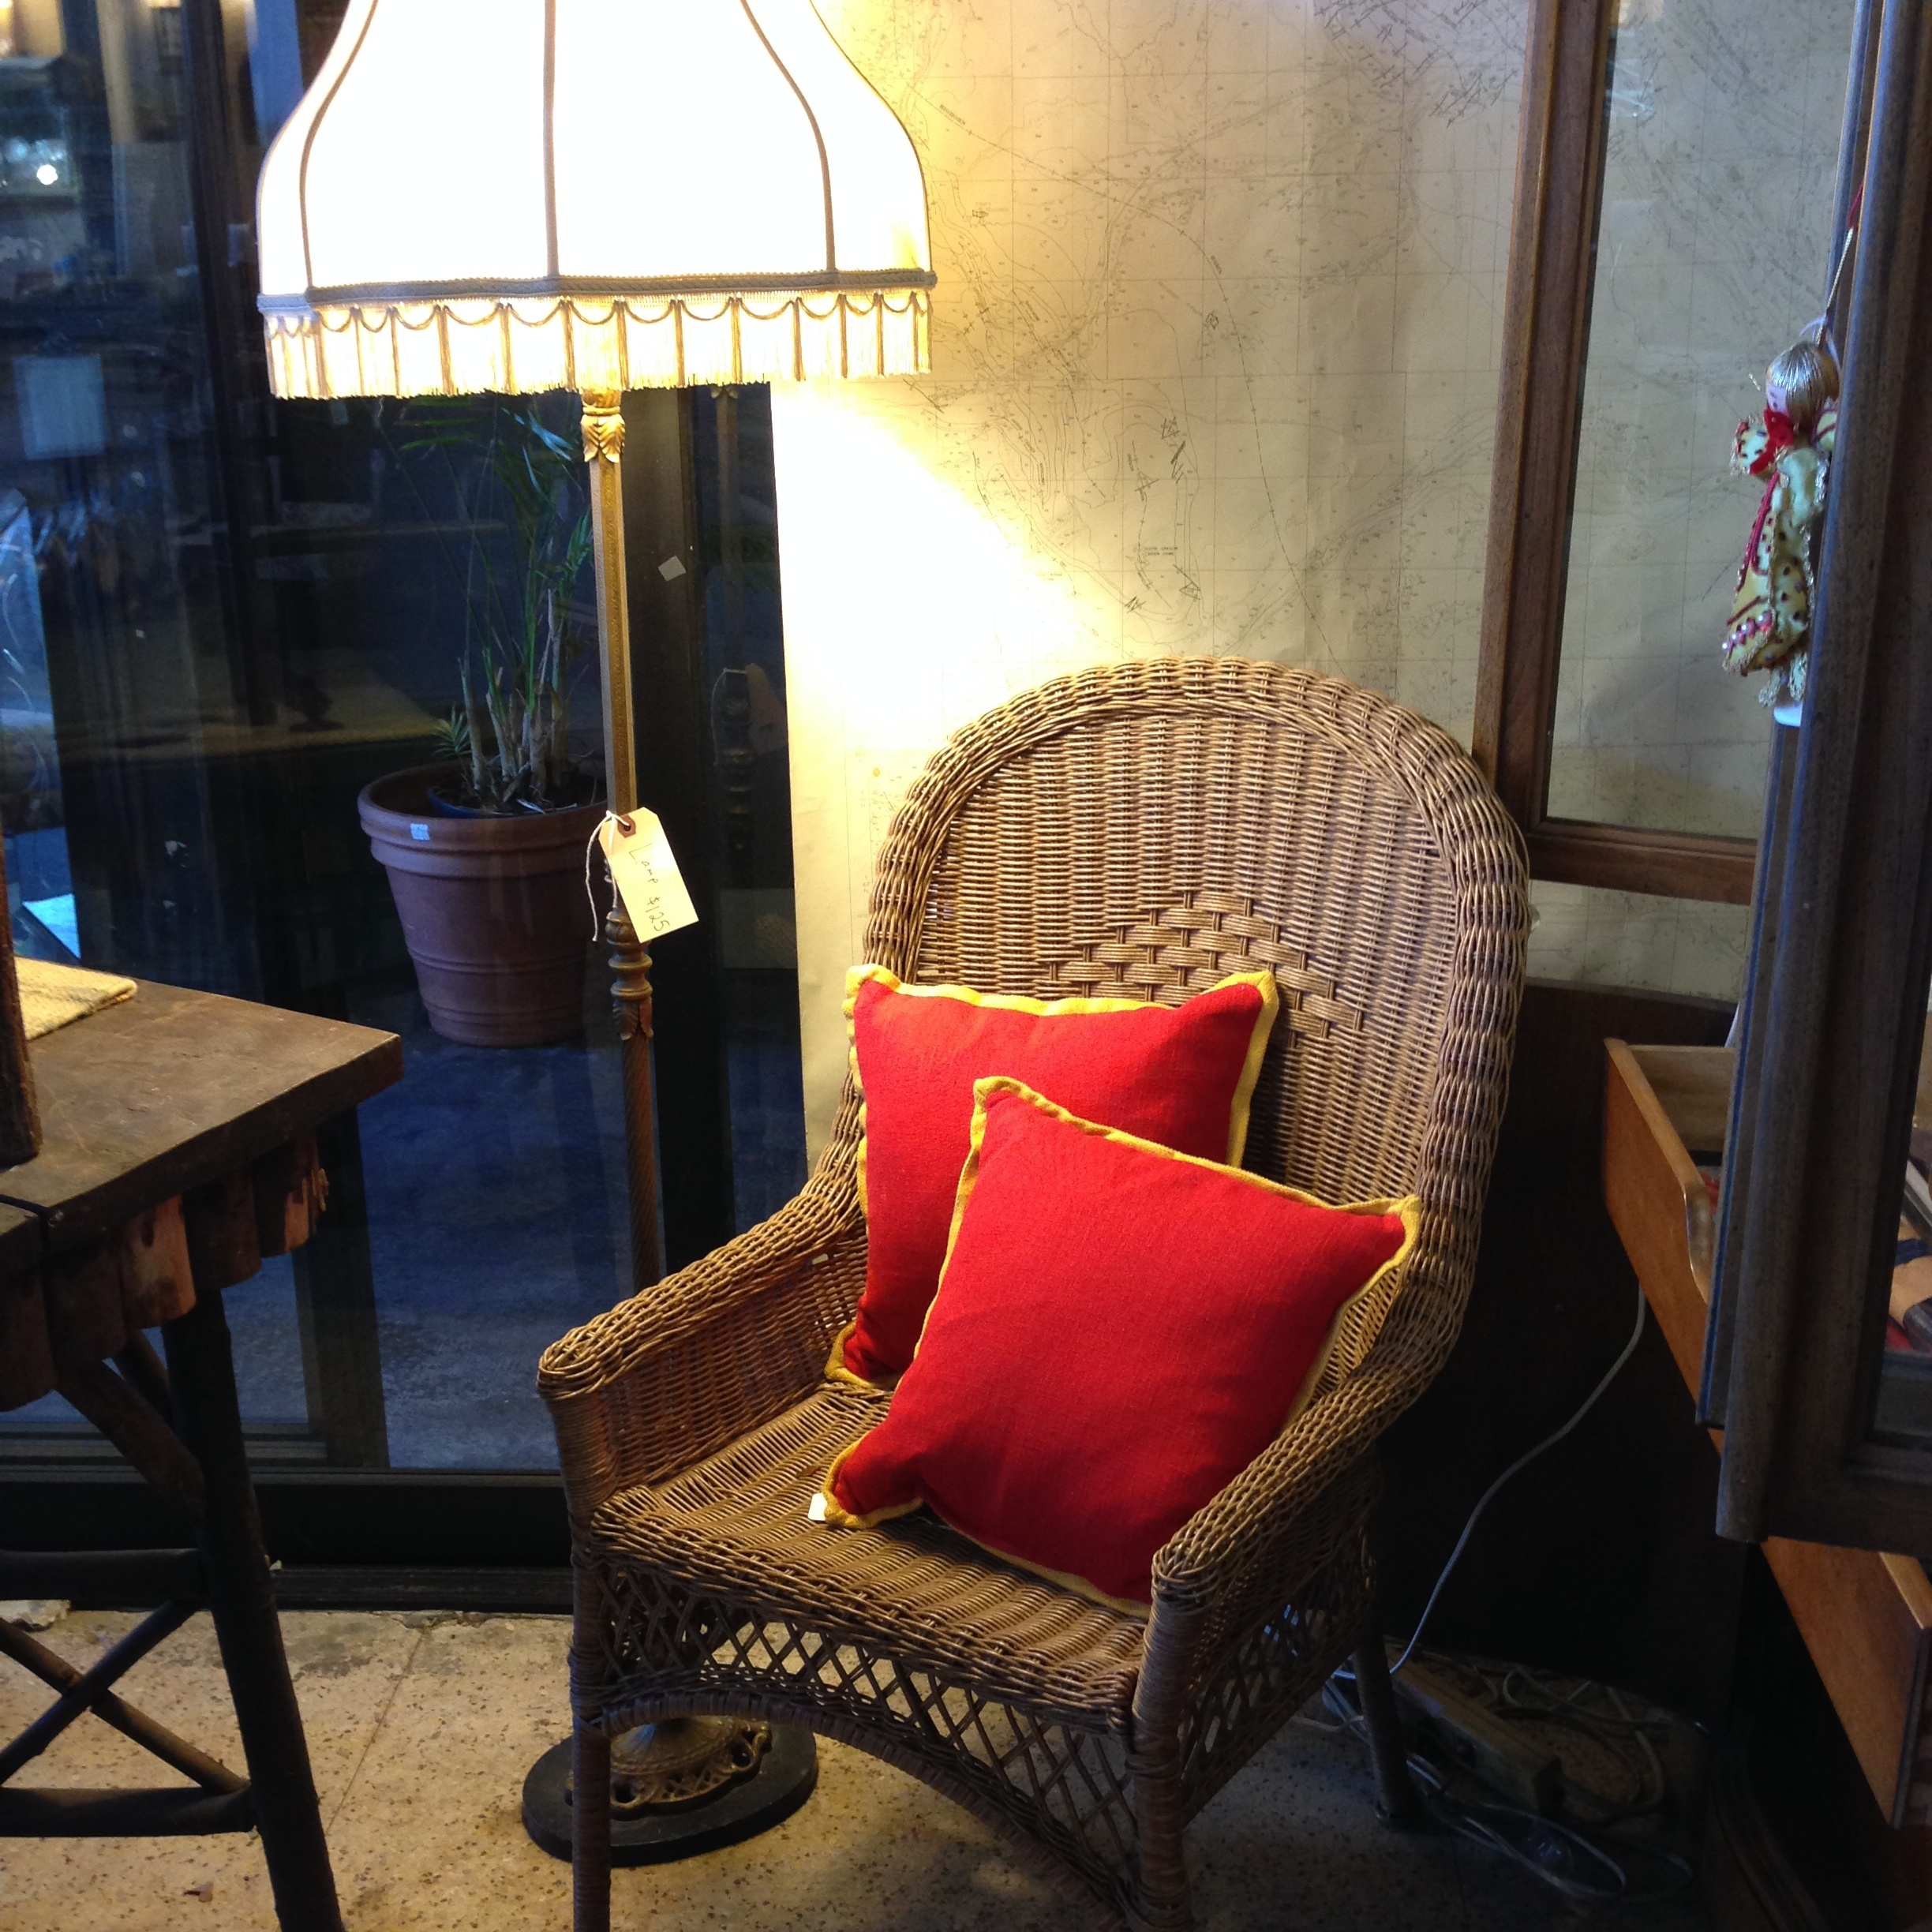 Vintage Lamp and Wicker Chair